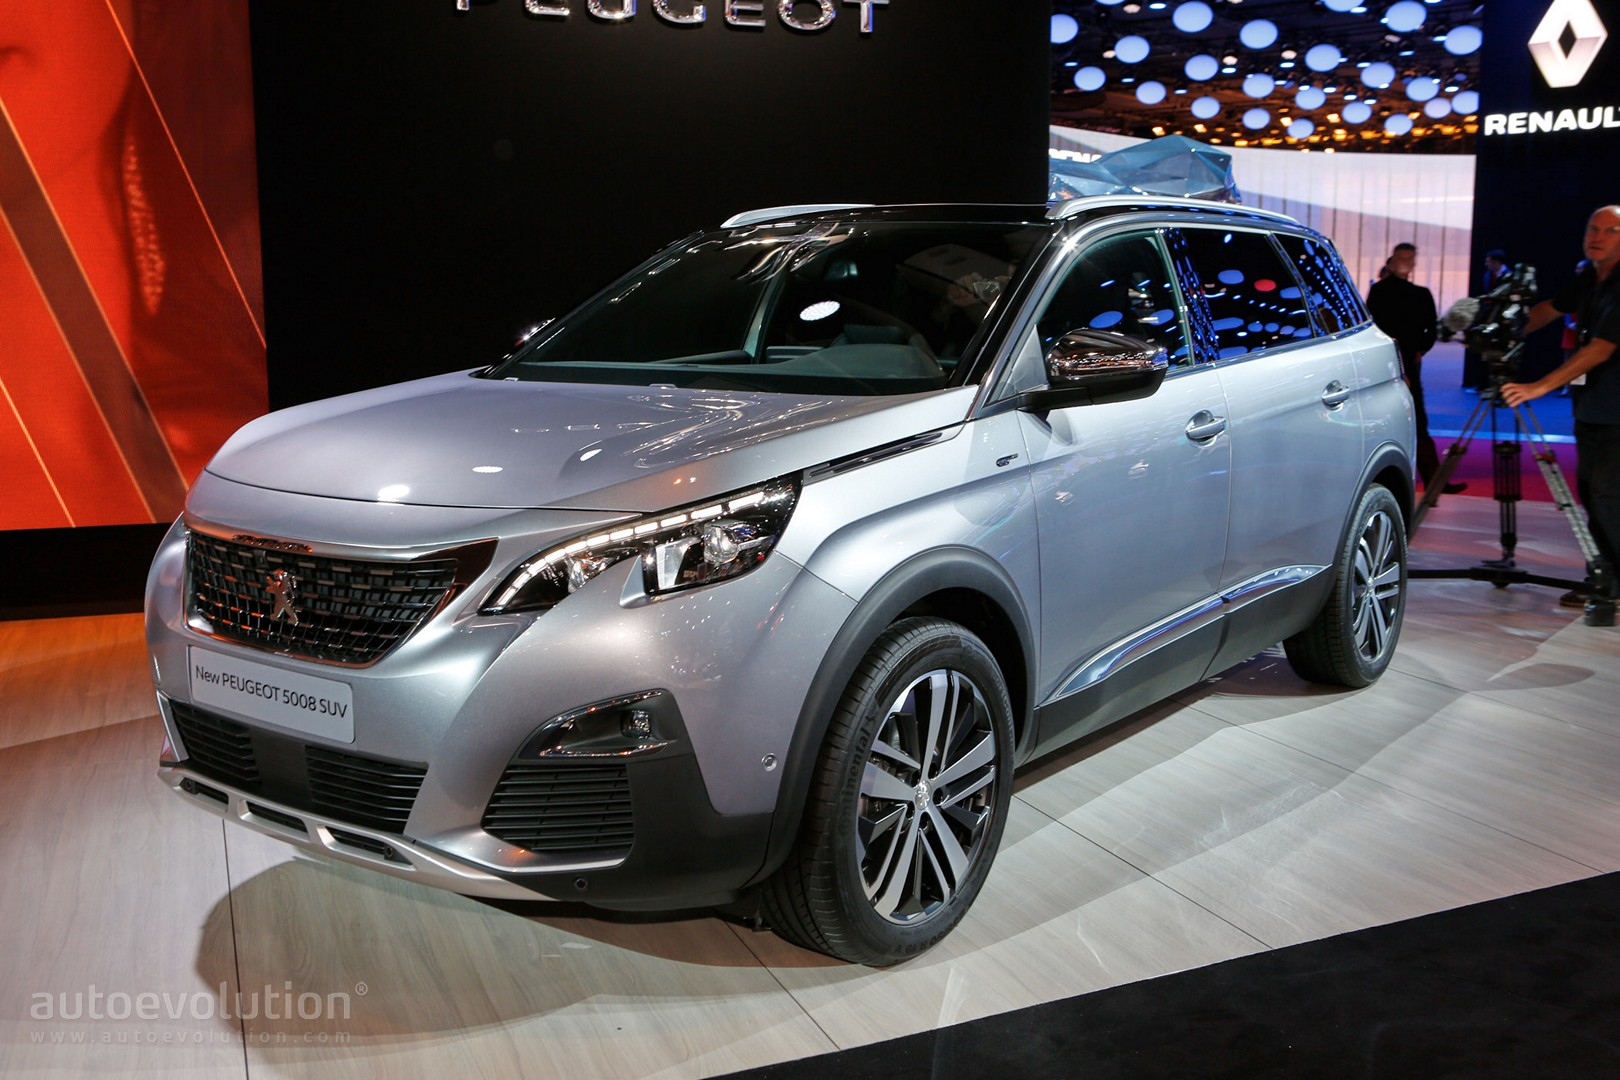 all new peugeot 5008 is a 7 seater crossover in paris autoevolution. Black Bedroom Furniture Sets. Home Design Ideas